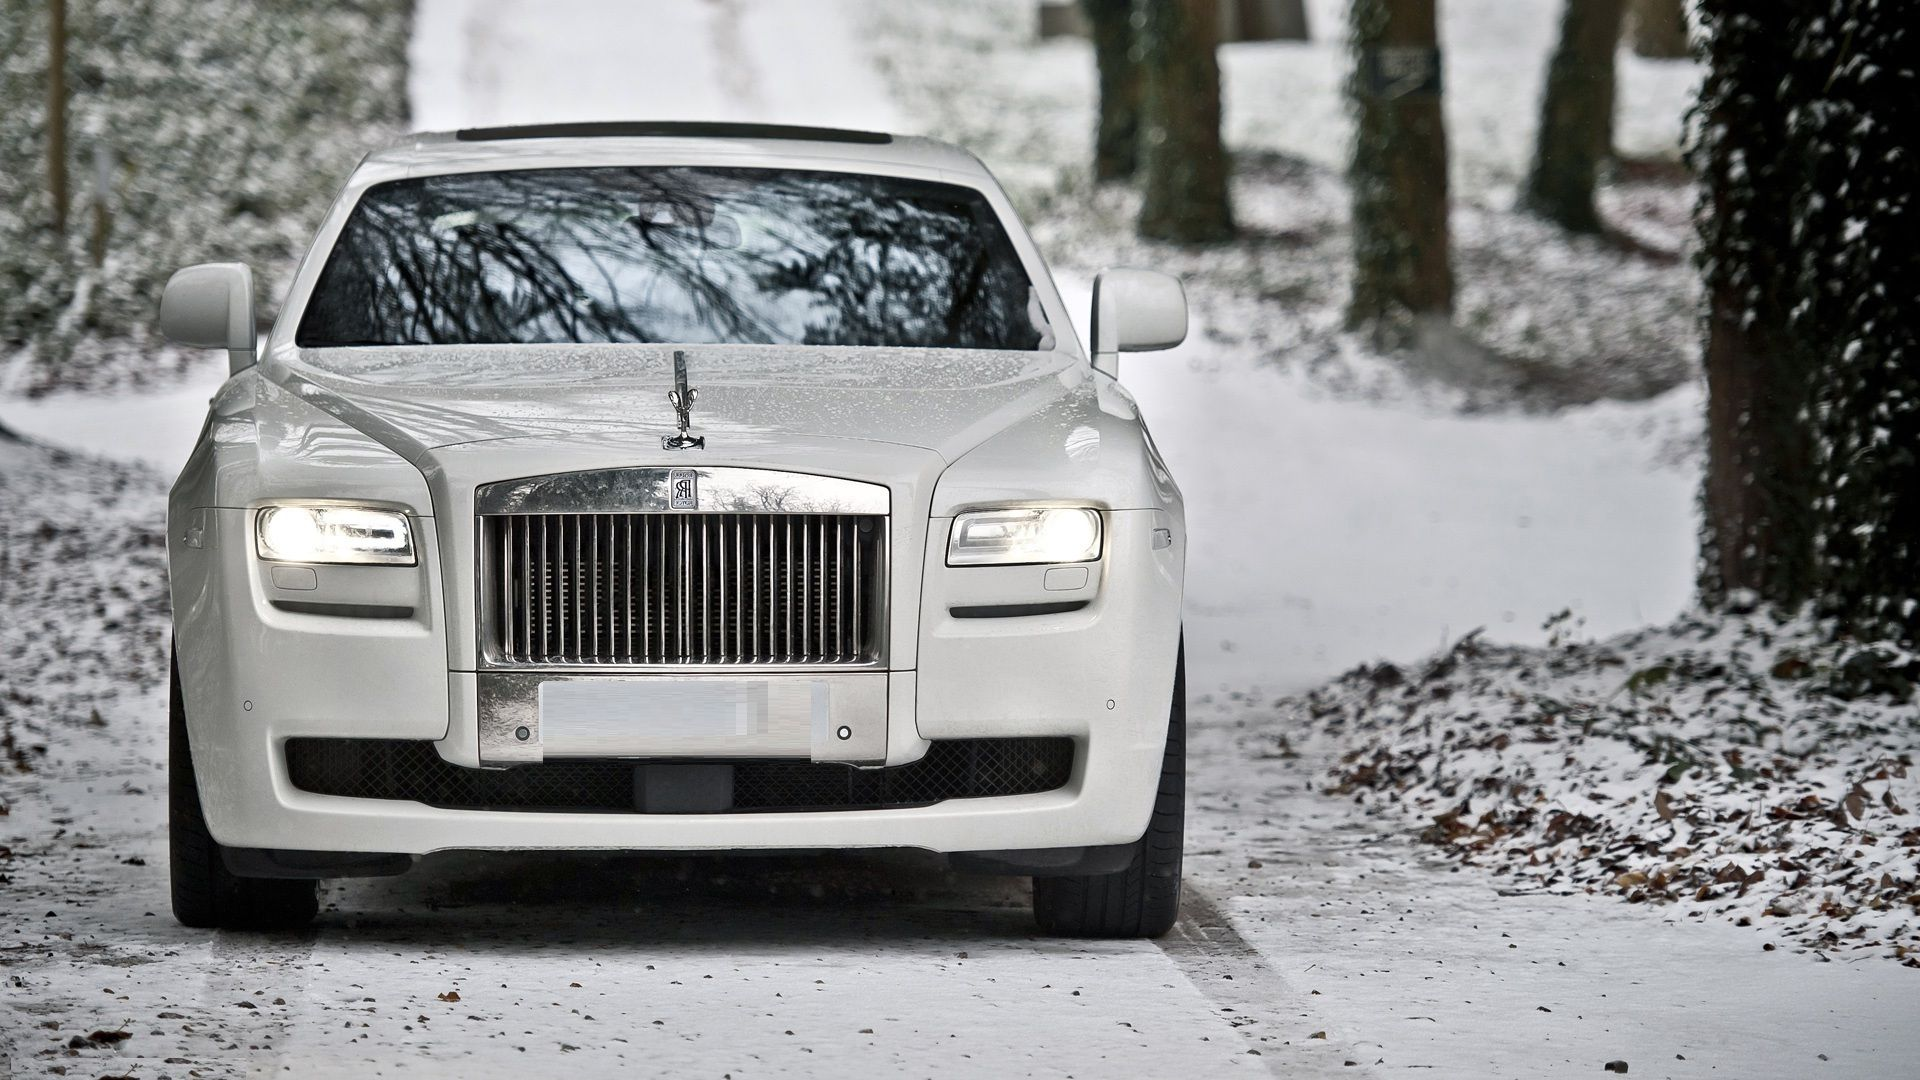 Rolls Royce Wallpapers Most Beautiful Places In The World 1920x1200 Wallpaper